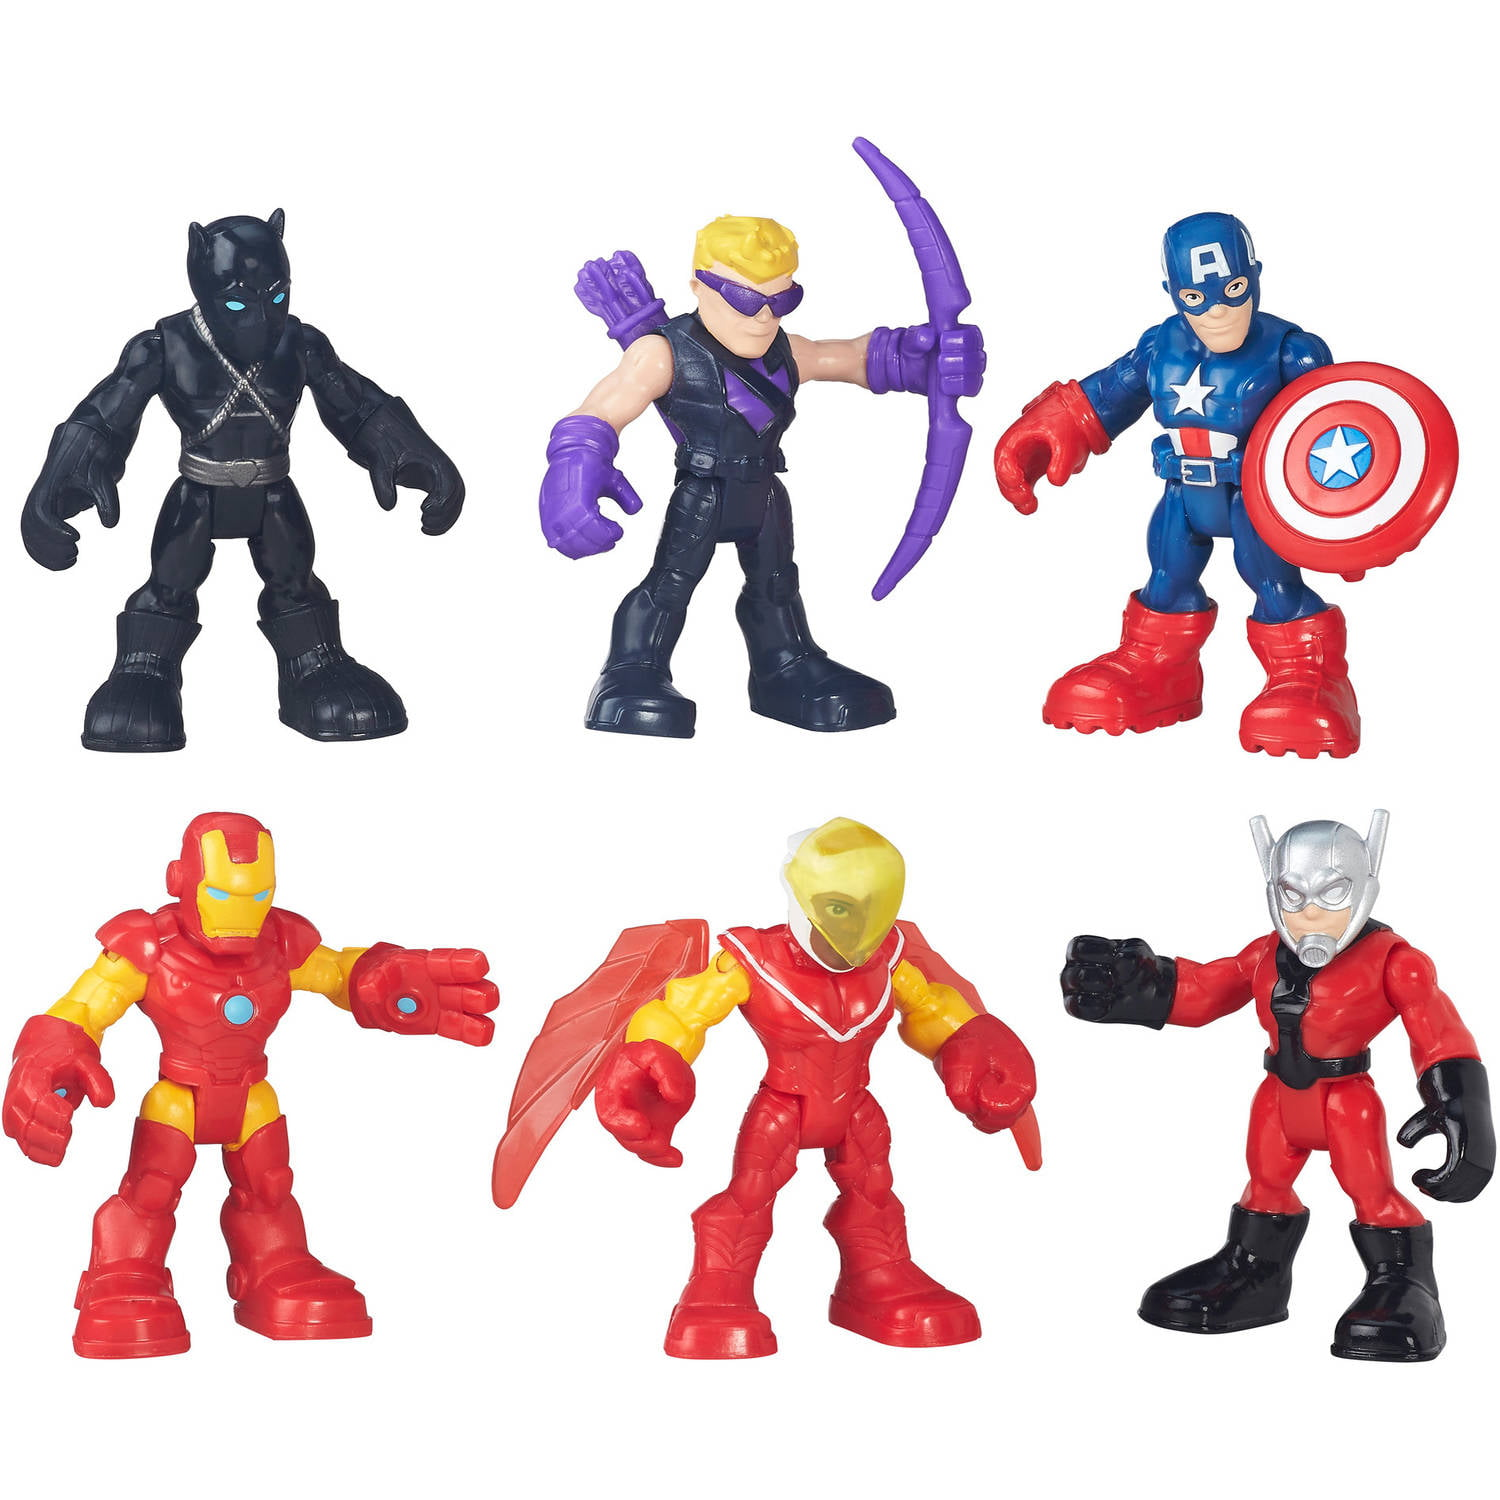 Playskool Heroes Marvel Super Hero Adventures Captain America Jungle Adventure Team by Hasbro